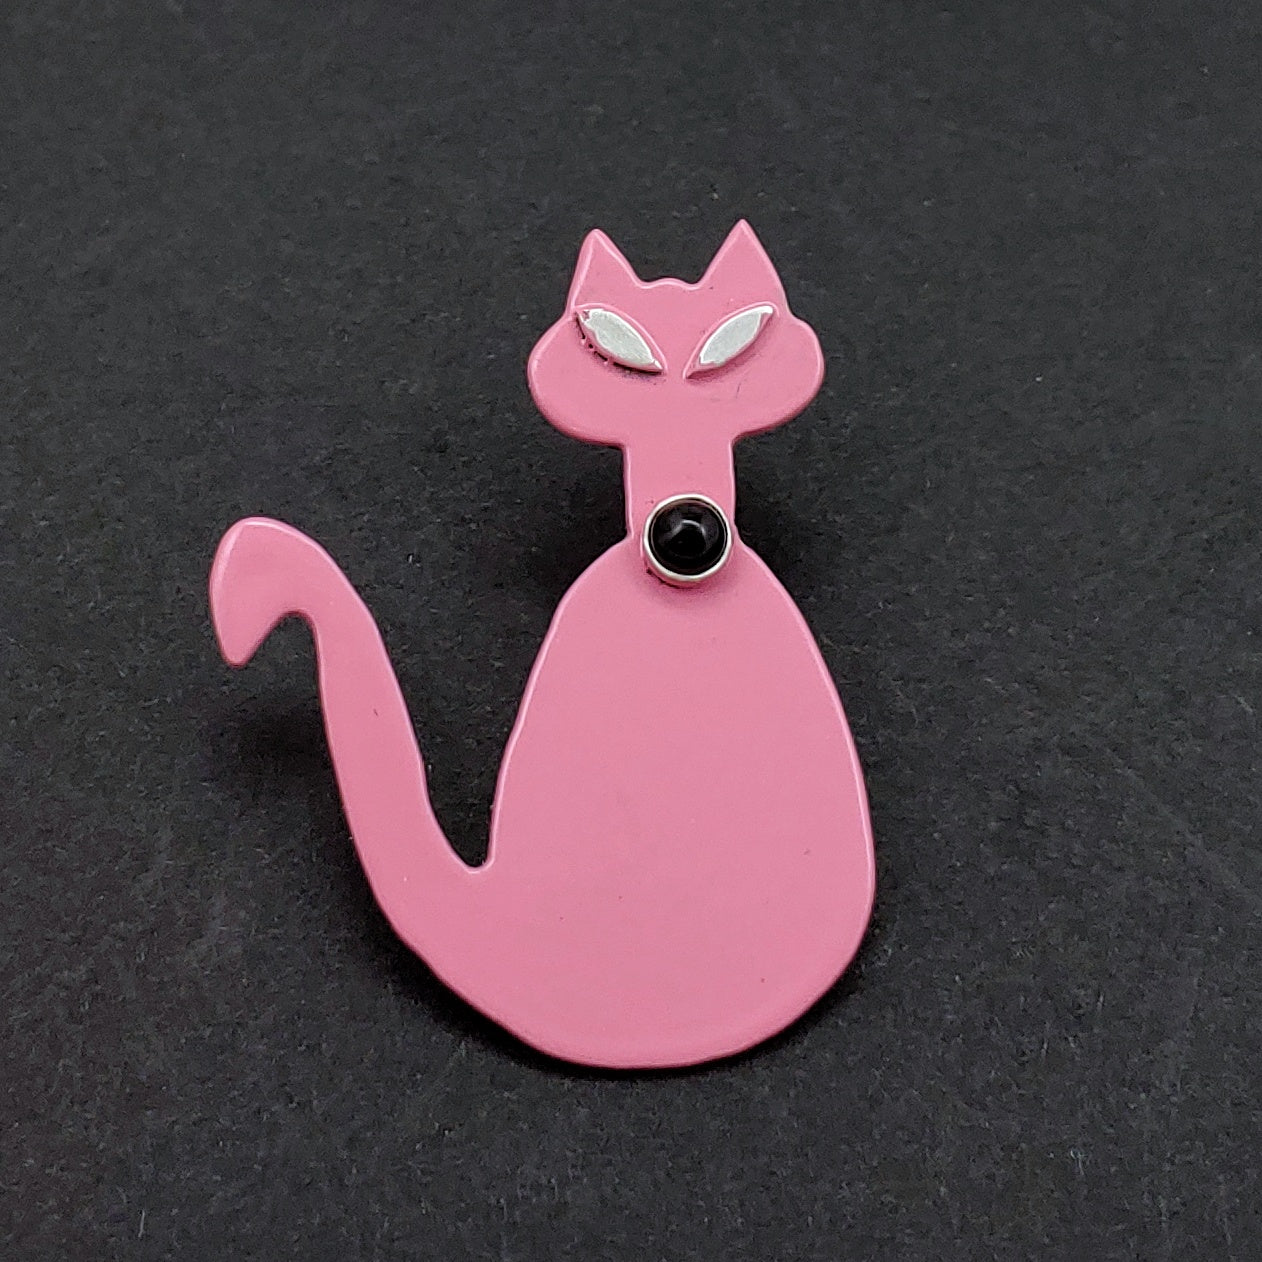 Mid-Mod Cat Powdercoated Pin/Brooch - Pink